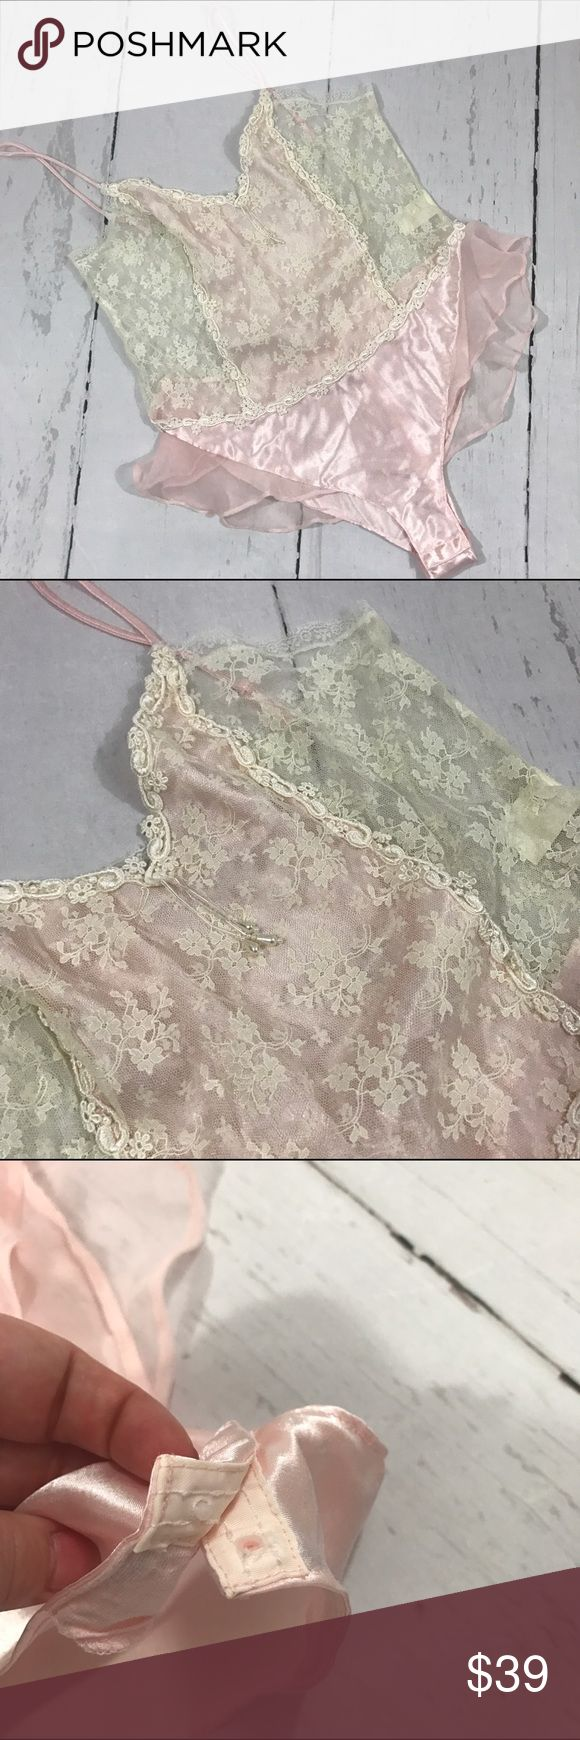 "💚💚 VINTAGE TEDDY LINGERIE BODYSUIT B40 Condition: Euc Approximate measurements (laying flat): 17"" bust 21"" Length pit to bottom Item location: bin 40  ❤no trades/no modeling❤ Delicates Intimates & Sleepwear"